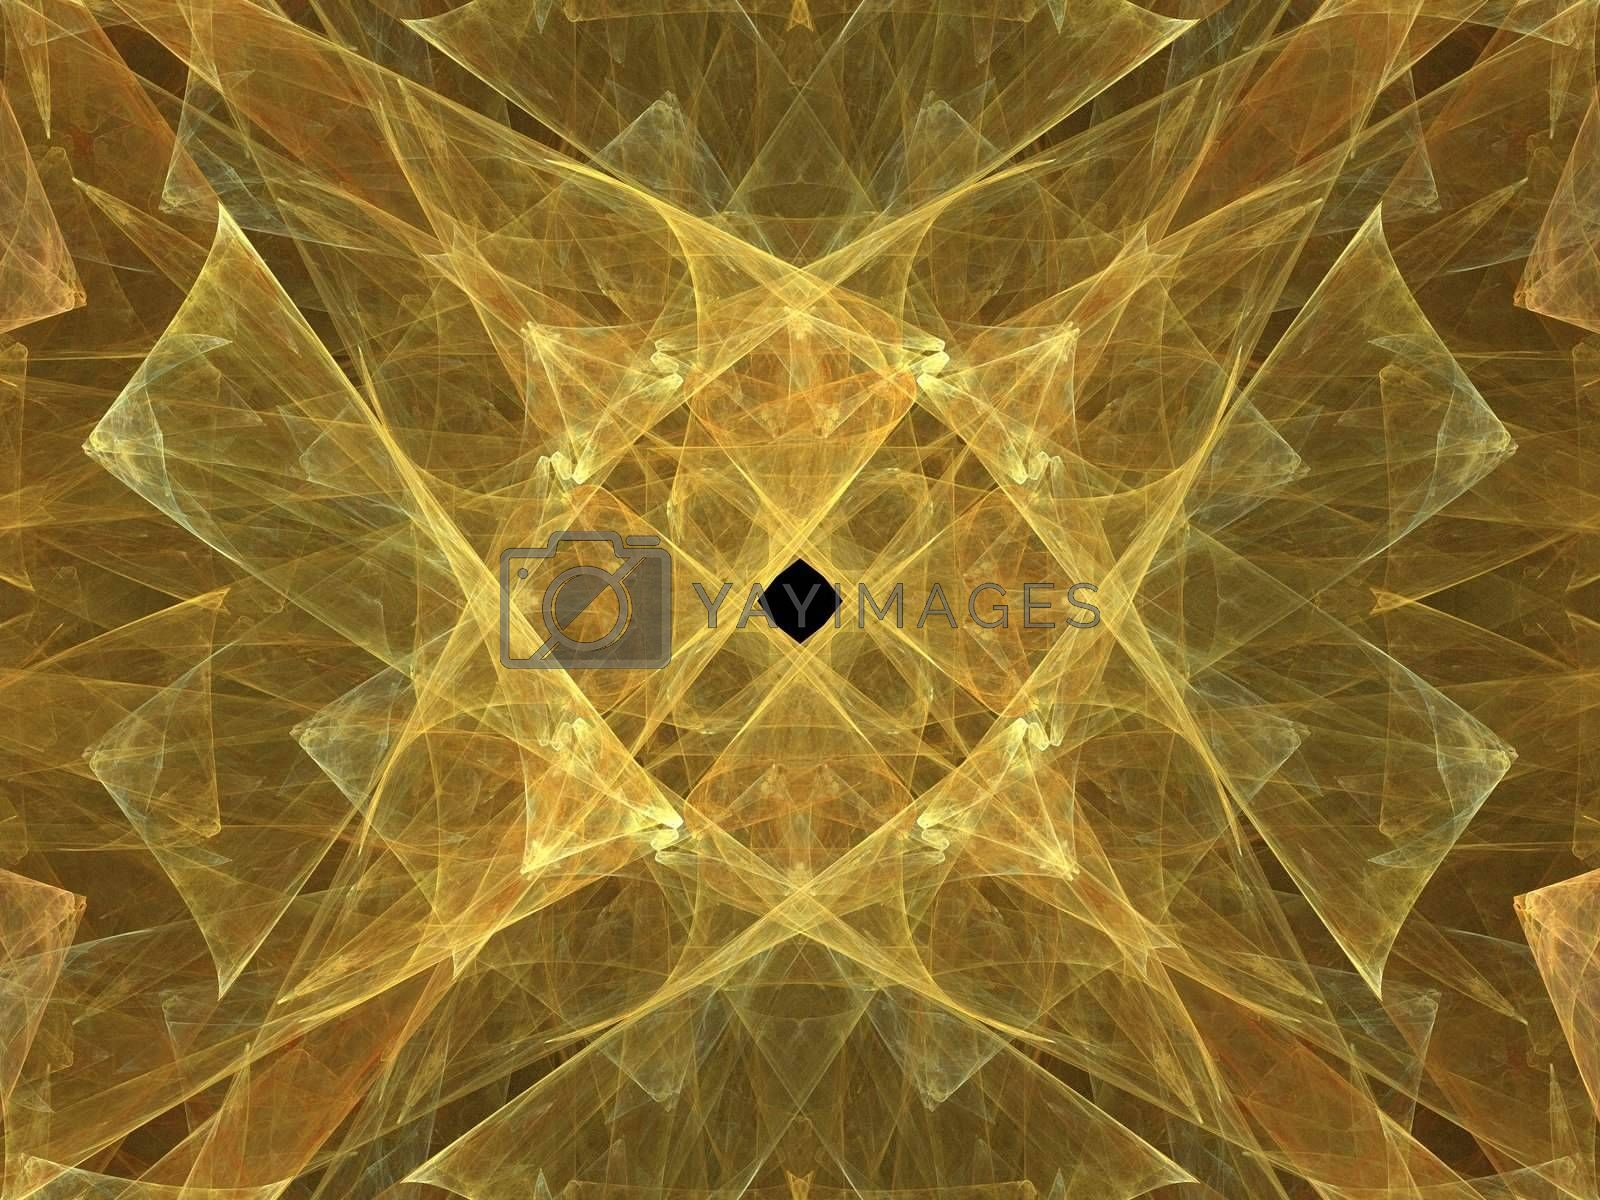 yellow background created with fractal functions